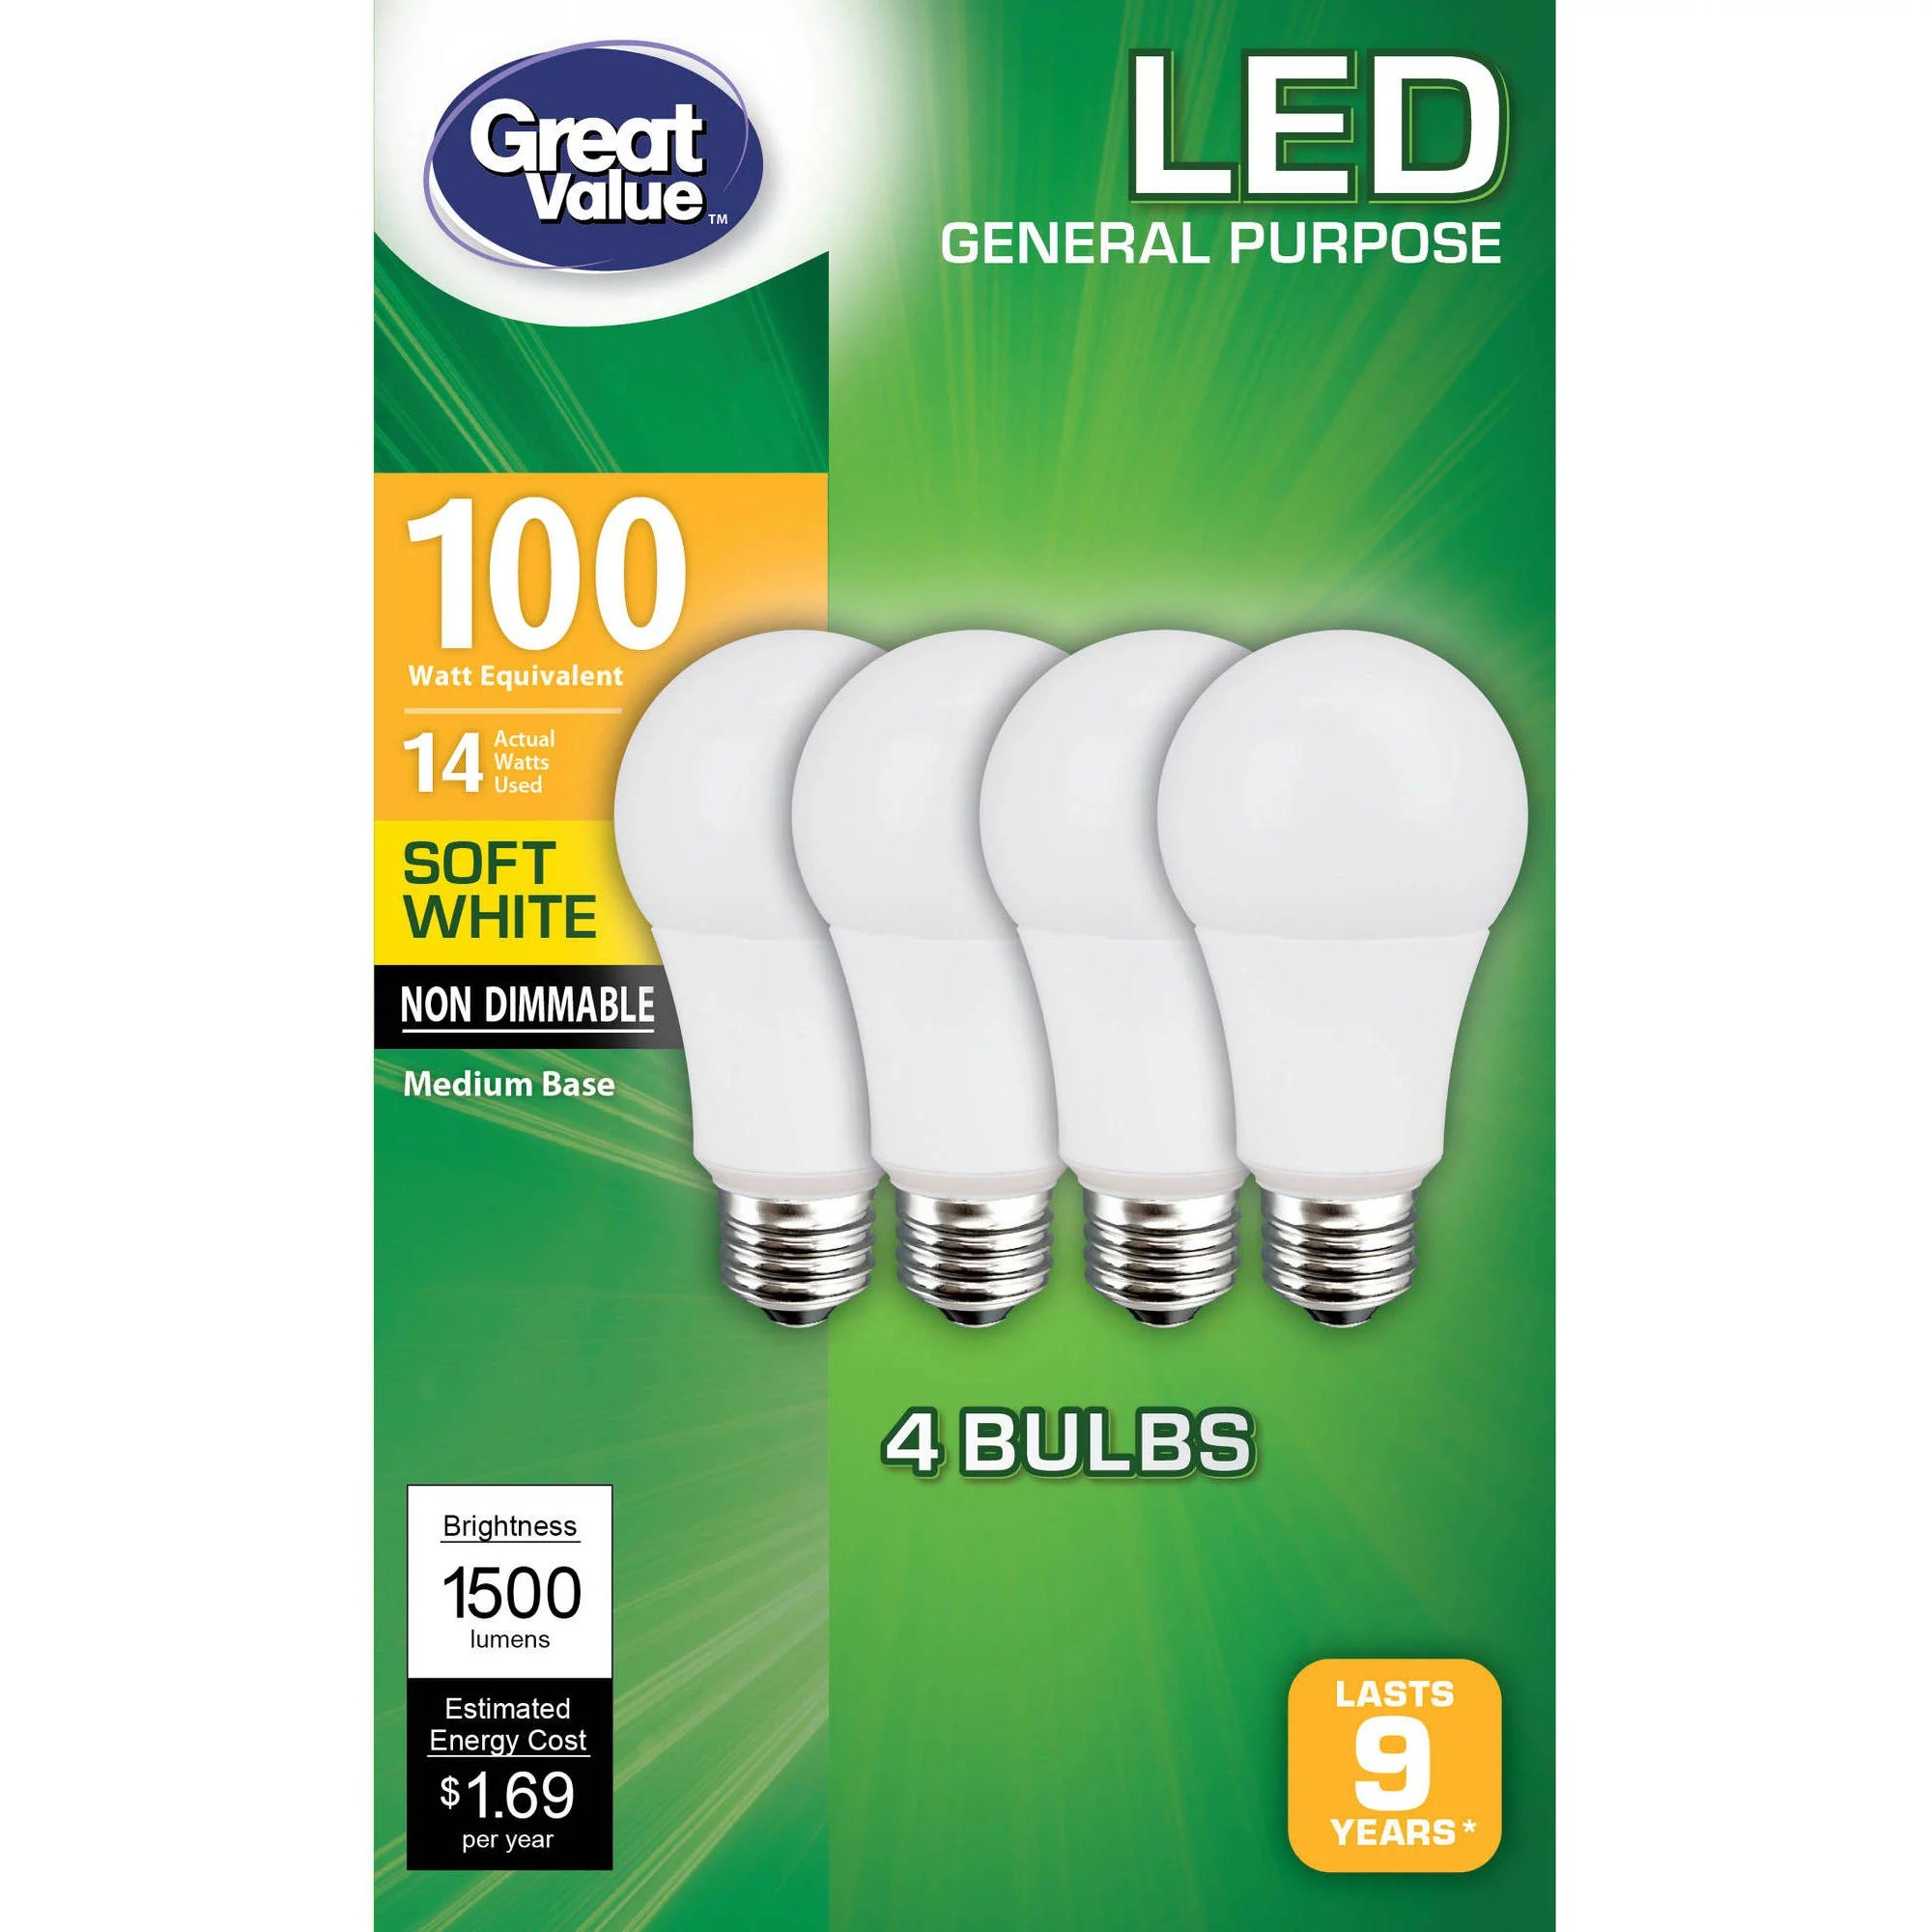 Led Lights At Walmart Great Value General Purpose Led Light Bulbs 14w 100w Equivalent Soft White Non Dimmable 4 Count